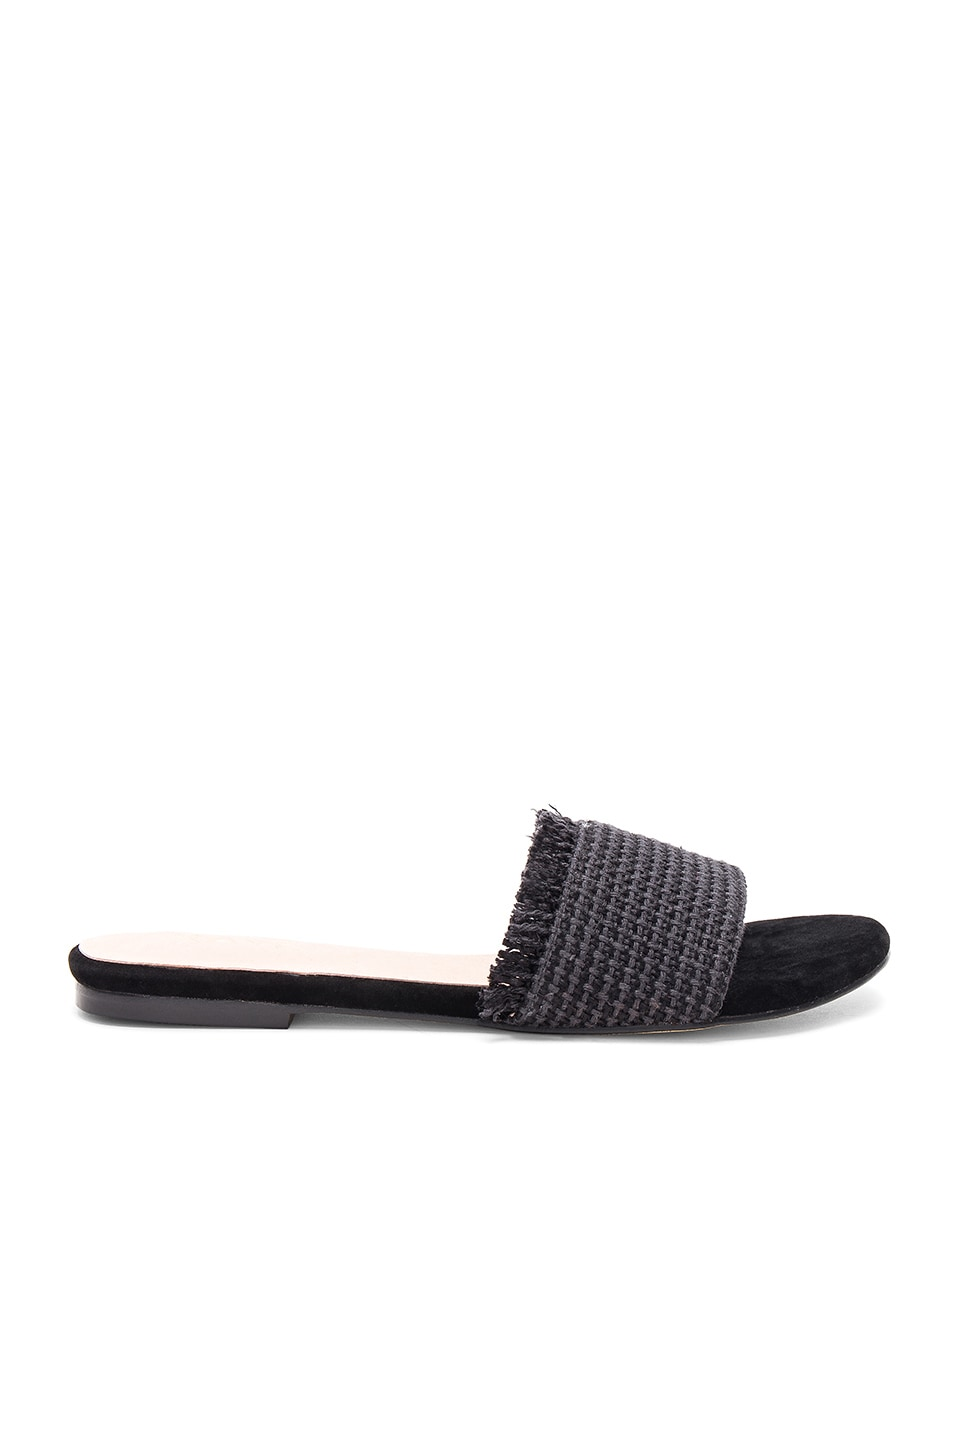 RAYE x REVOLVE Sawtelle Slide in Black